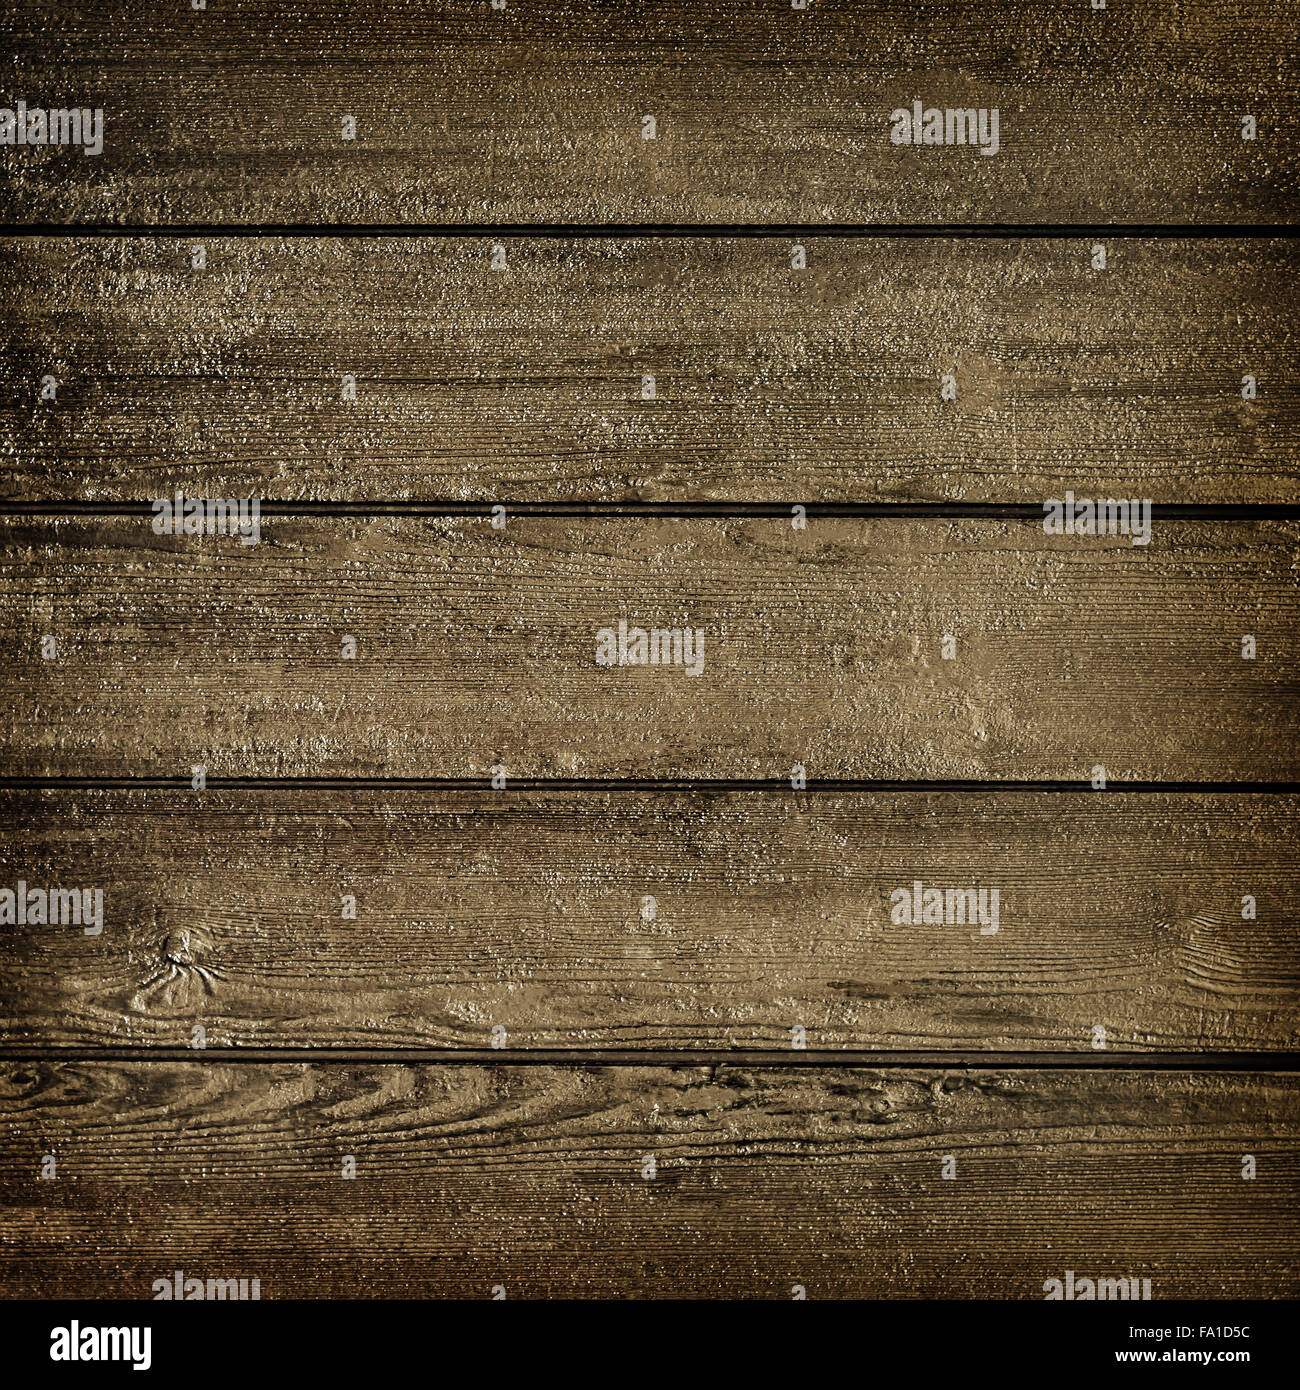 Plain wood table with hipster brick wall background stock photo - Wood Texture Background Brown Surface Empty Square Plain Closeup Horizontal Lines Stock Image